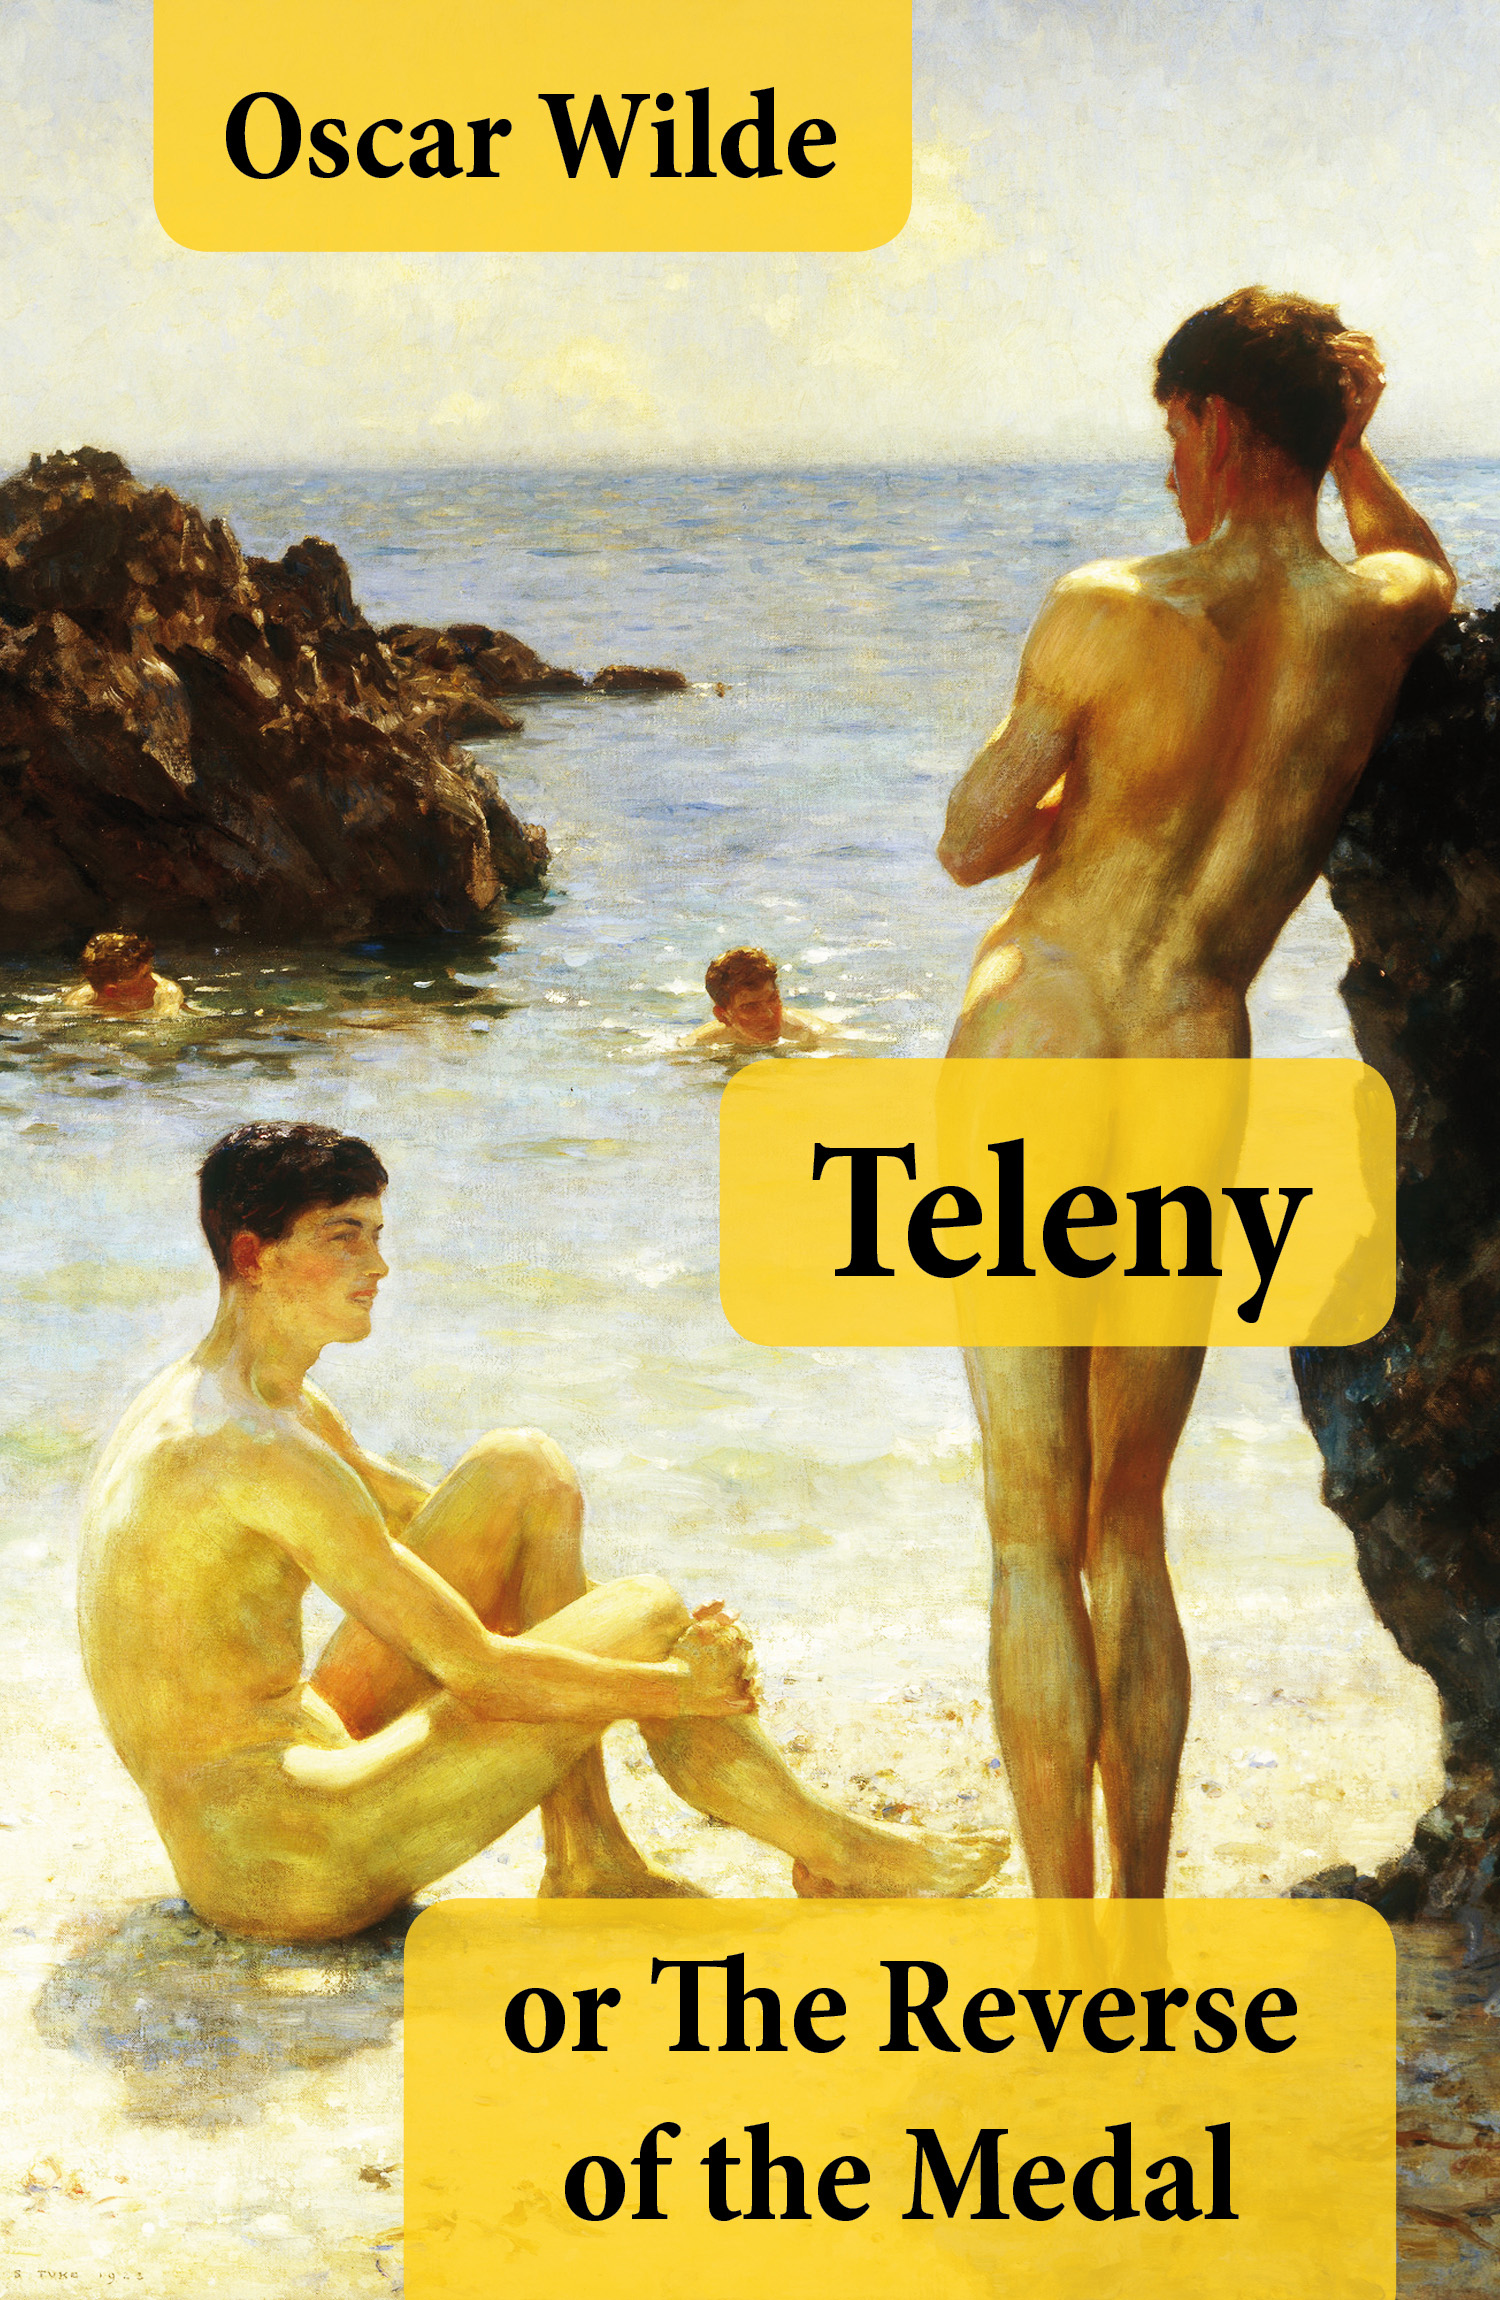 Teleny, or The Reverse of the Medal (A Gay Erotica Classic attributed to Oscar Wilde)